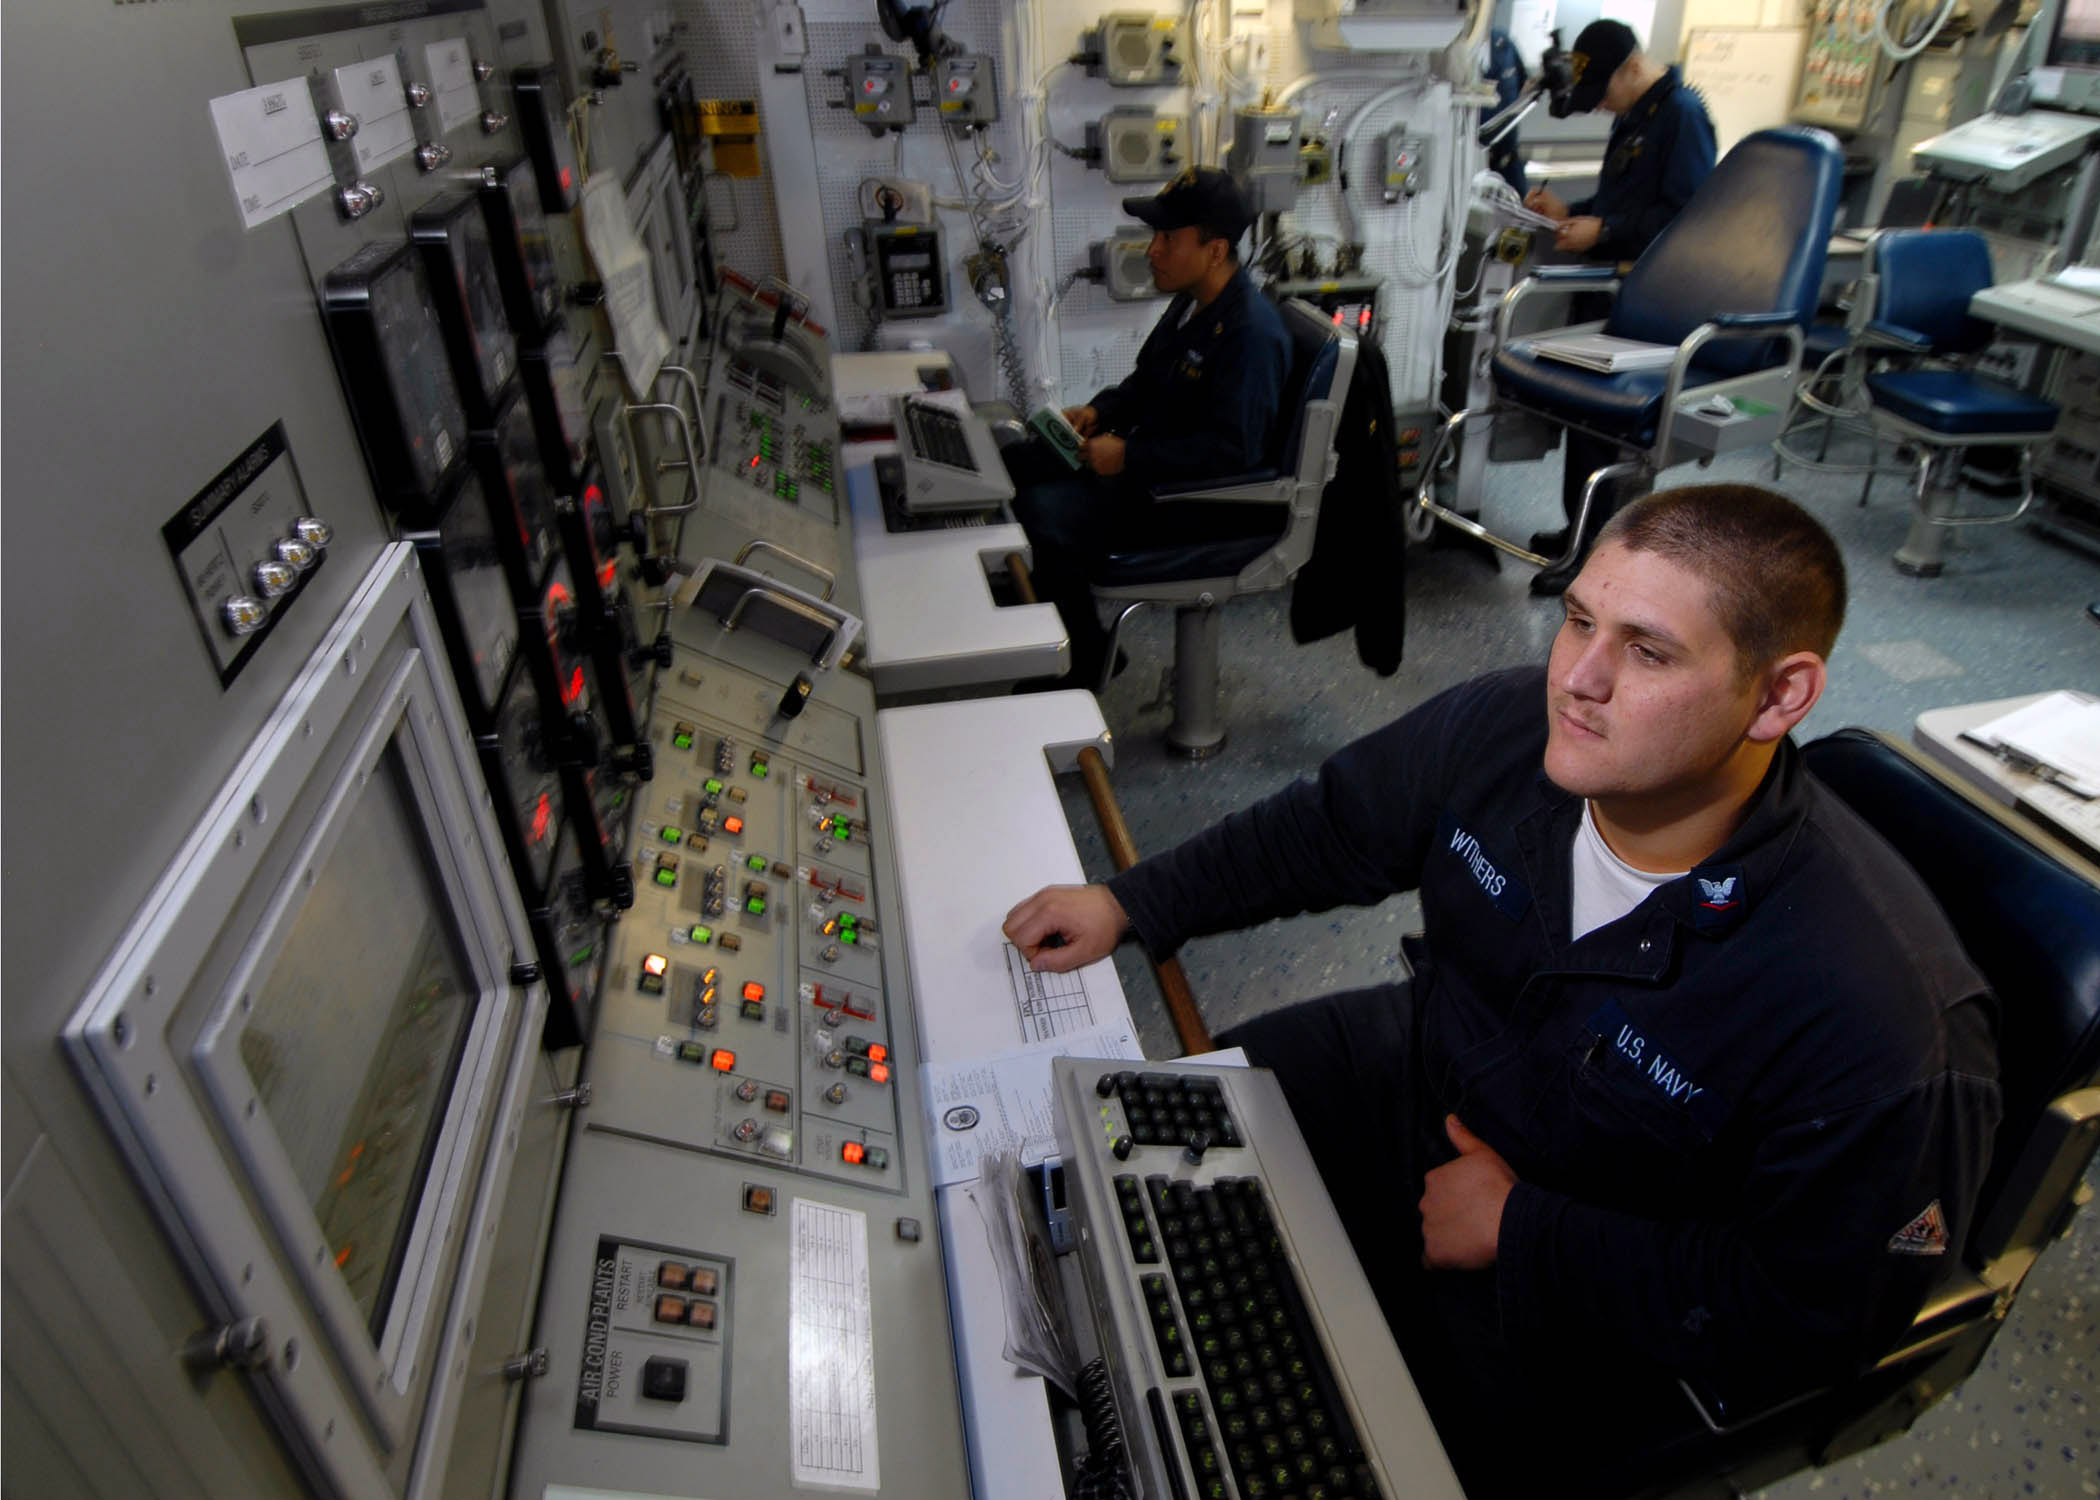 File US Navy N 7981E 172 Gas Turbine Systems Technician